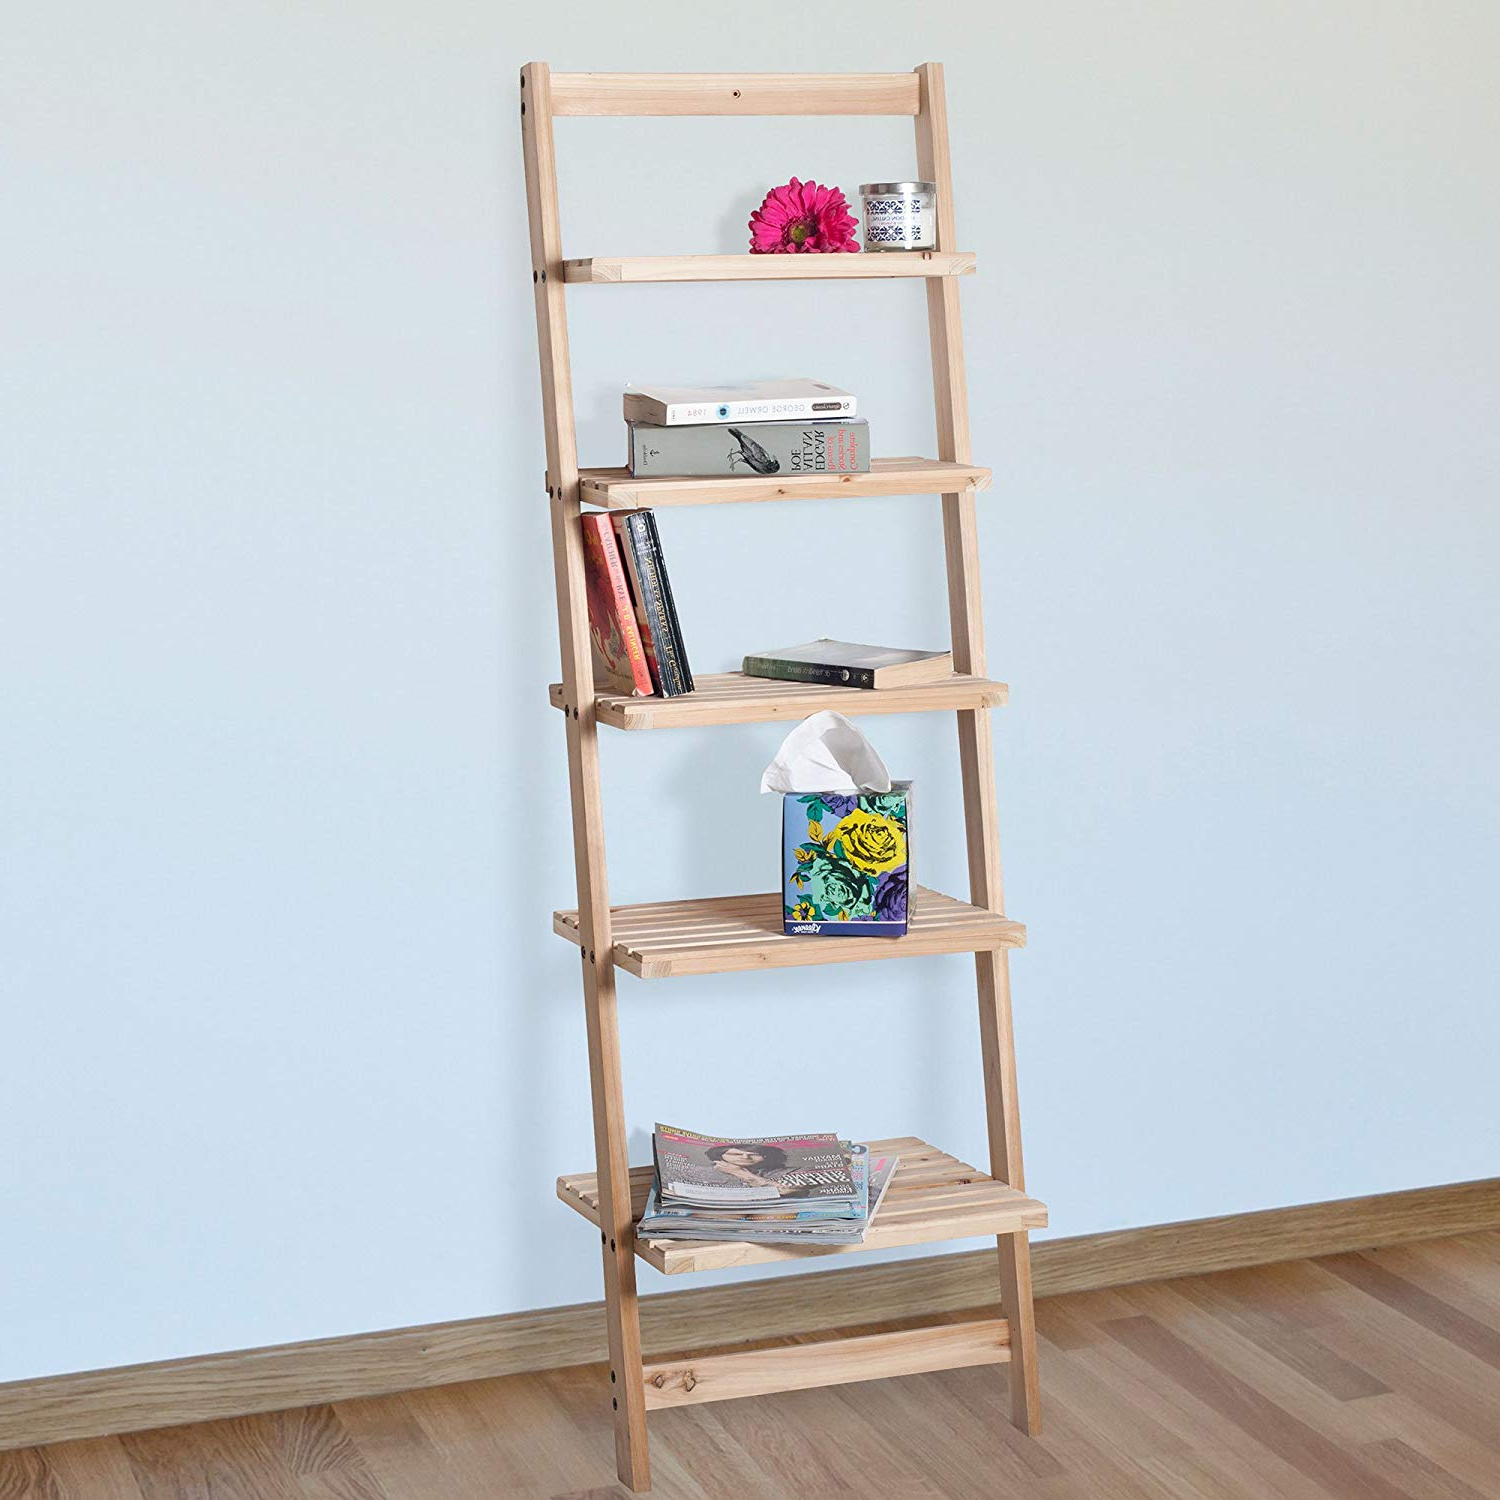 Book Shelf For Living Room, Bathroom, And Kitchen Shelving, Home Décor Lavish Home 5 Tier Decorative Leaning Ladder Shelf Wood Display Shelving Intended For Favorite Leandra Ladder Bookcases (View 18 of 20)